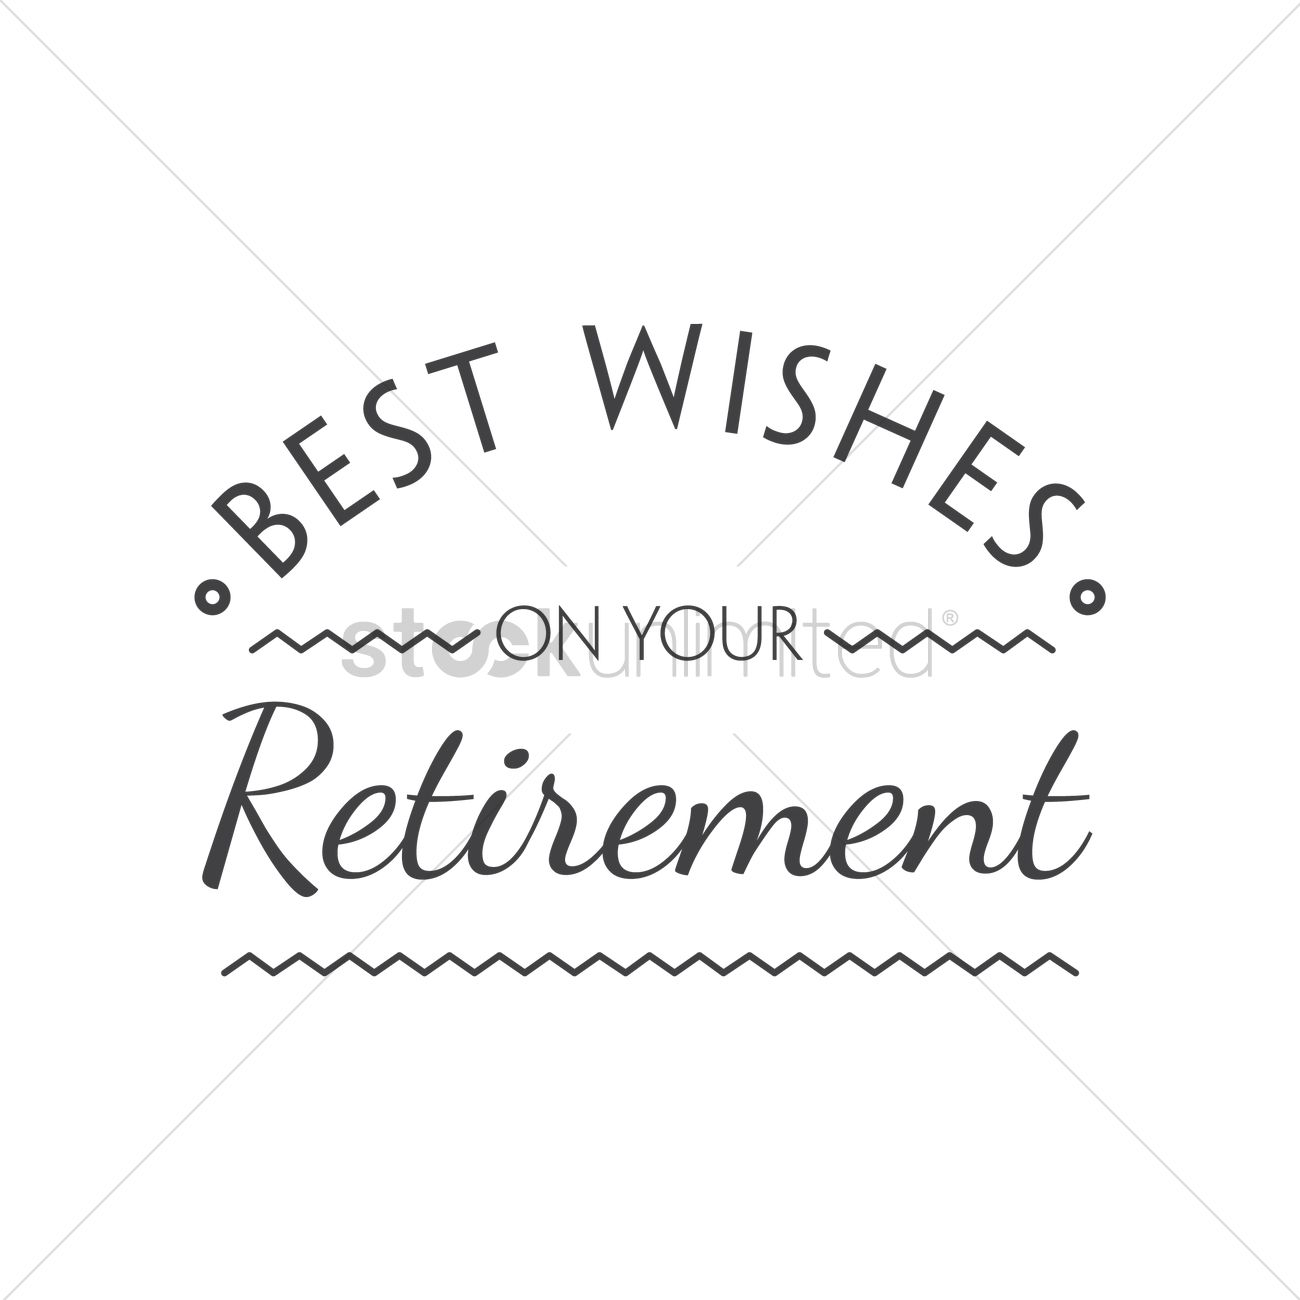 Best Wishes On Your Retirement Vector Image